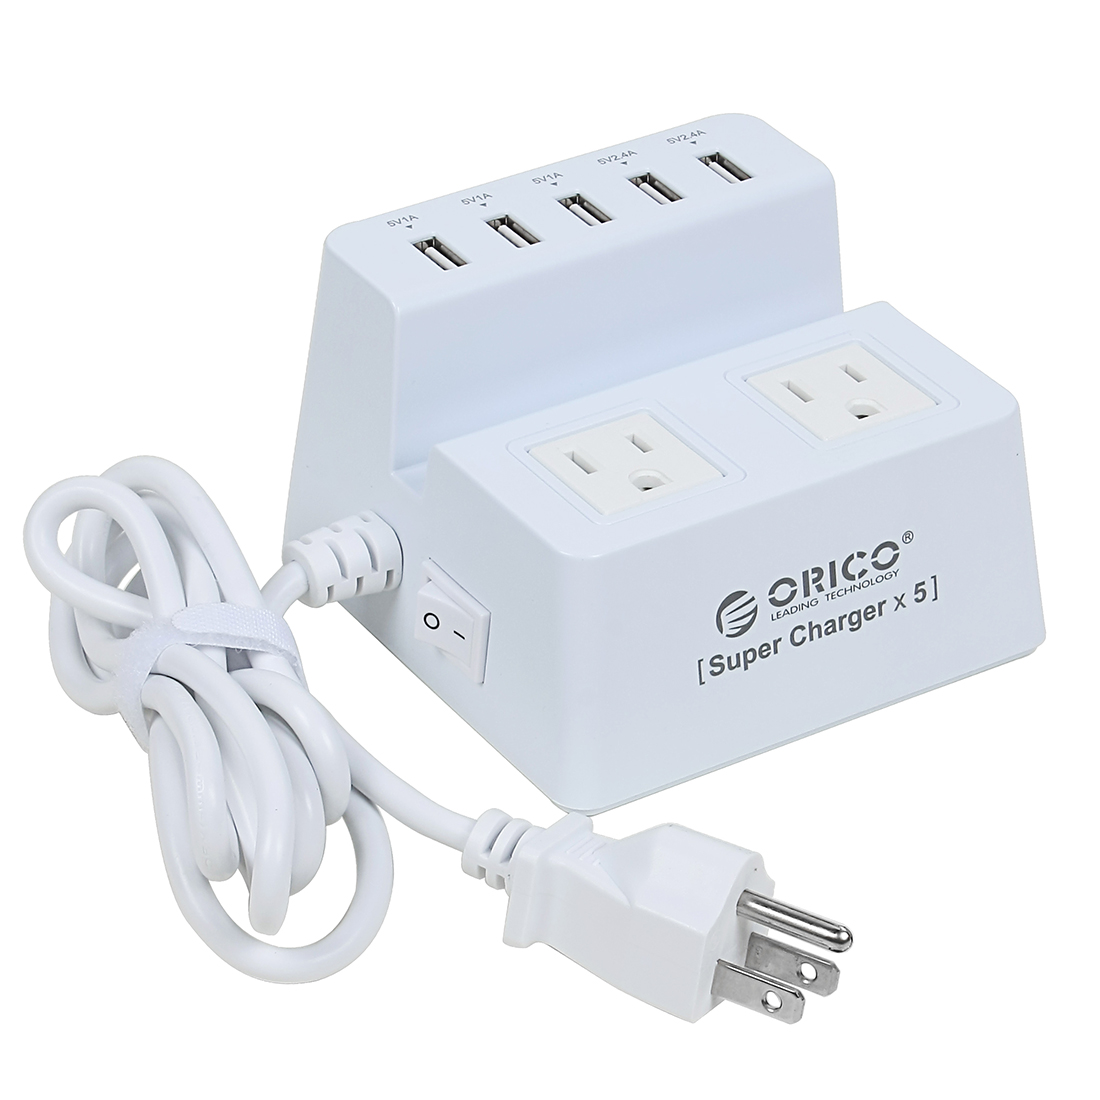 AC 100-250V US Plug 2 US Outlet 5 USB Ports Power Supply Strip 5ft Cable White